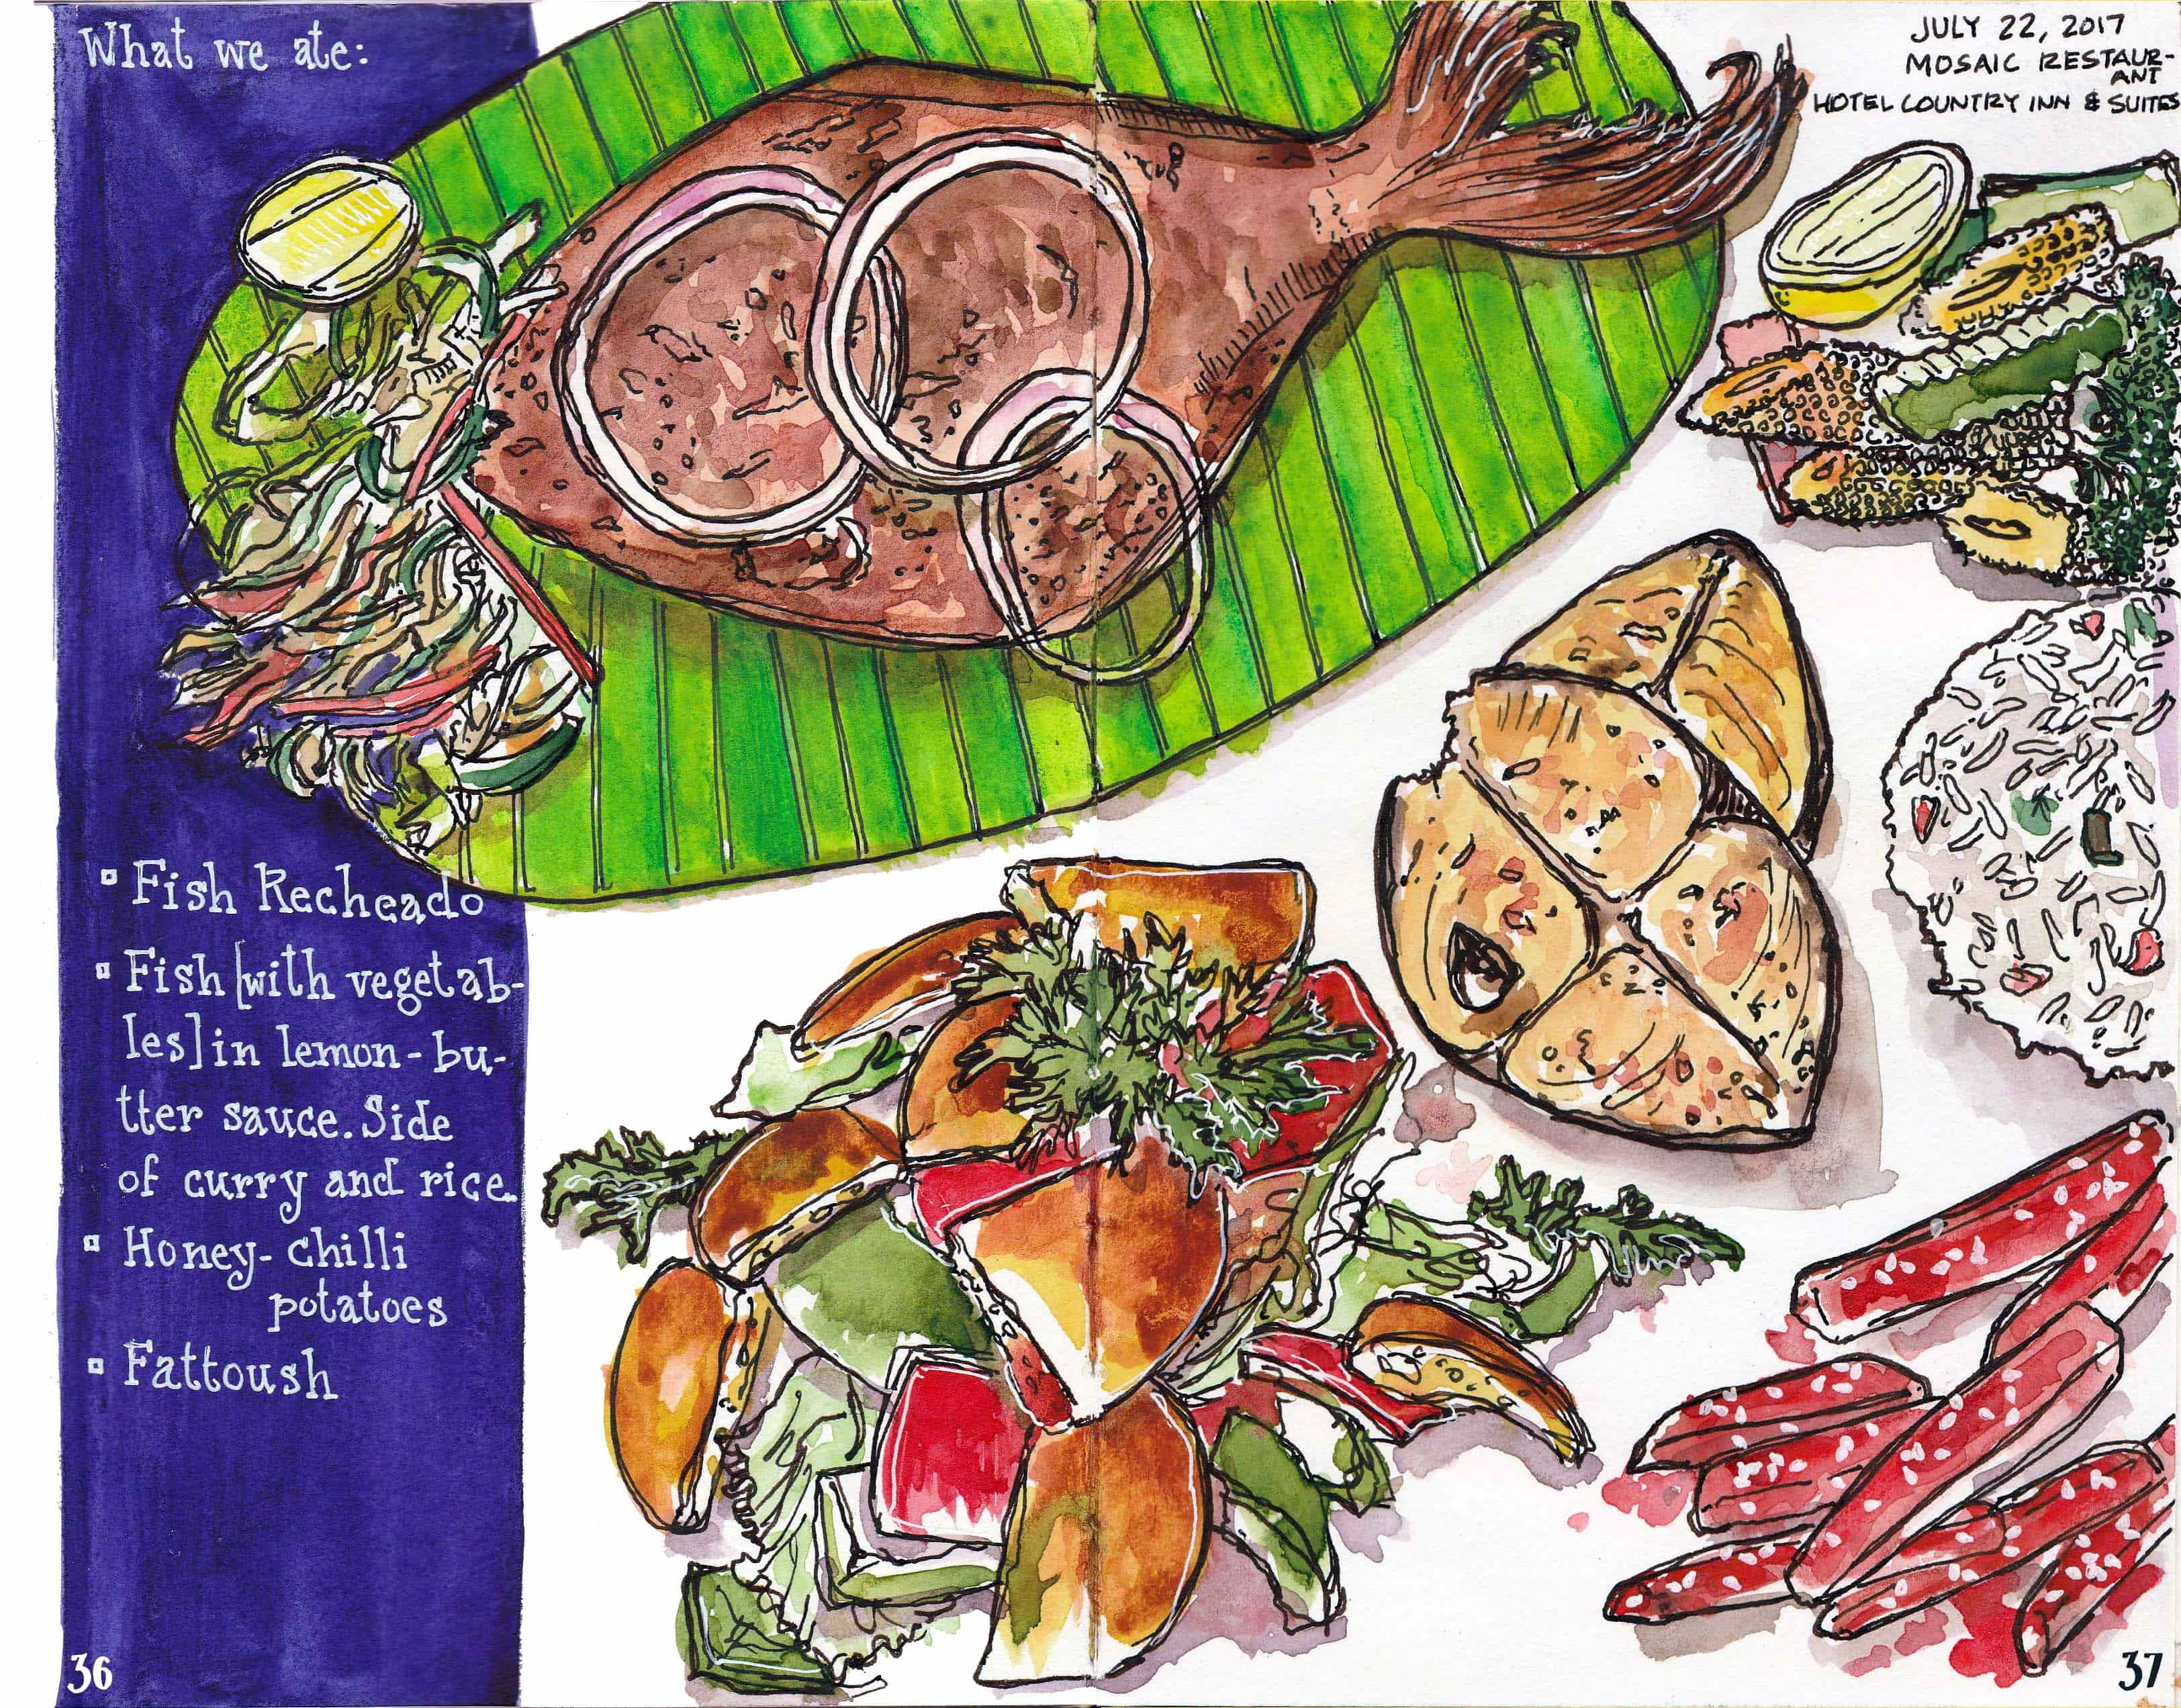 A page from the Goa chapter of 'Food Swings'. Image credit: Yasra Khoker.